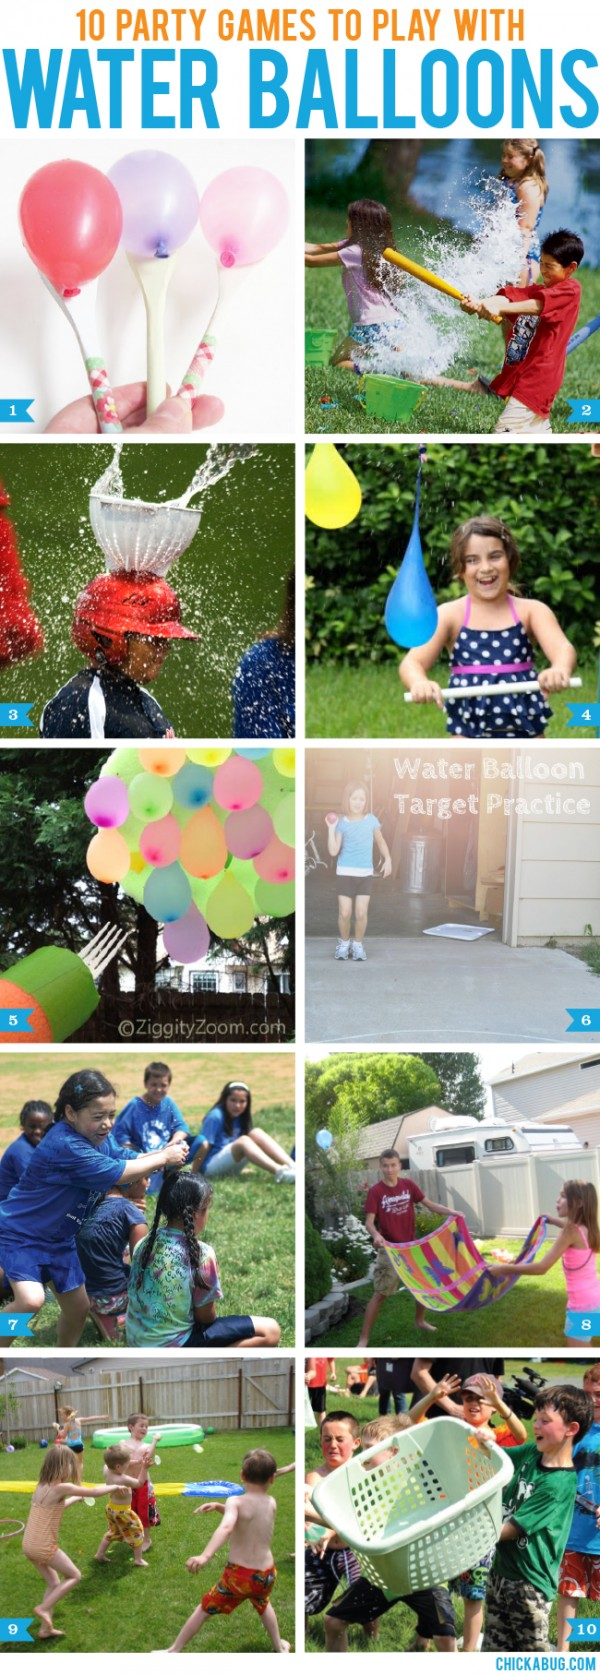 water-balloon-party-games